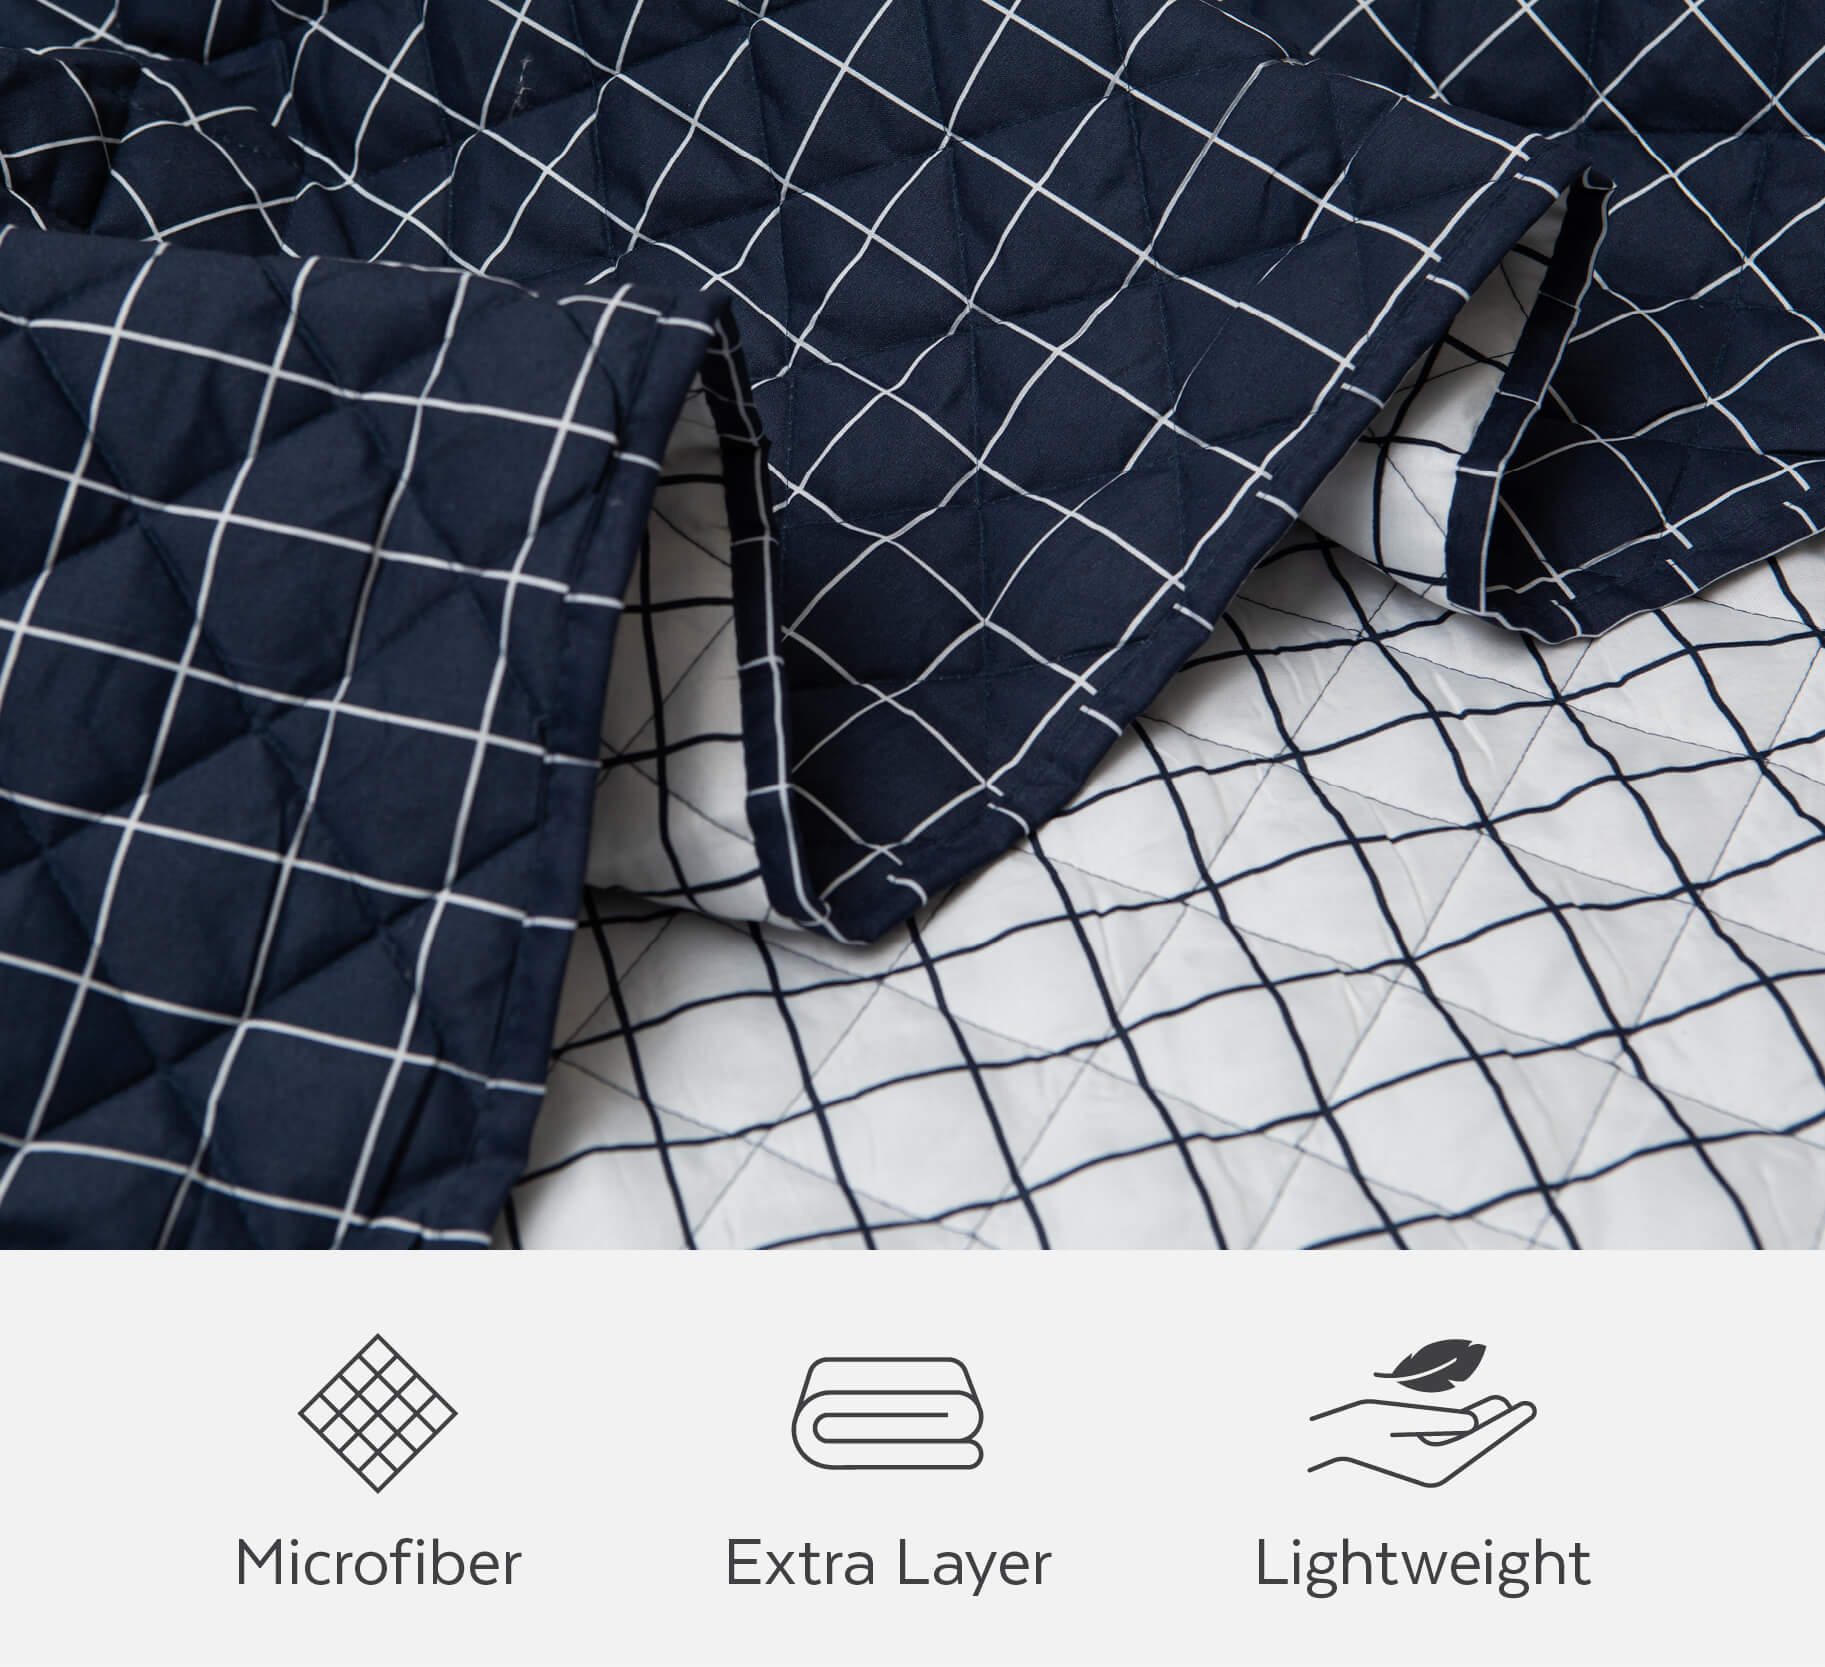 Coverlets are made of microfiber and can be used as a lightweight extra layer